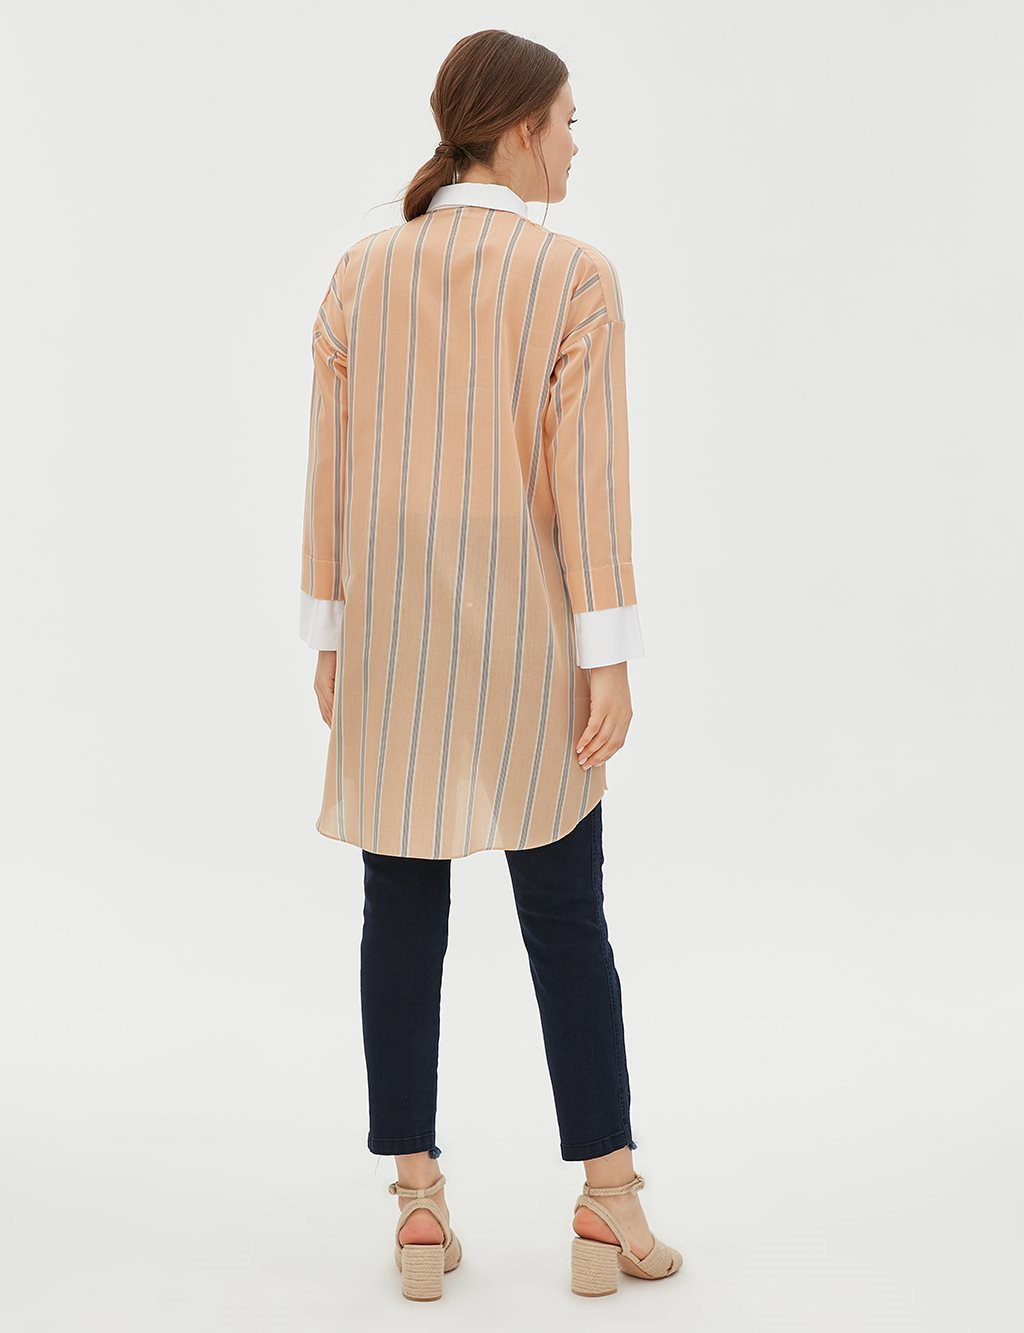 Tunic With Double Pocket B20 21117 Beige